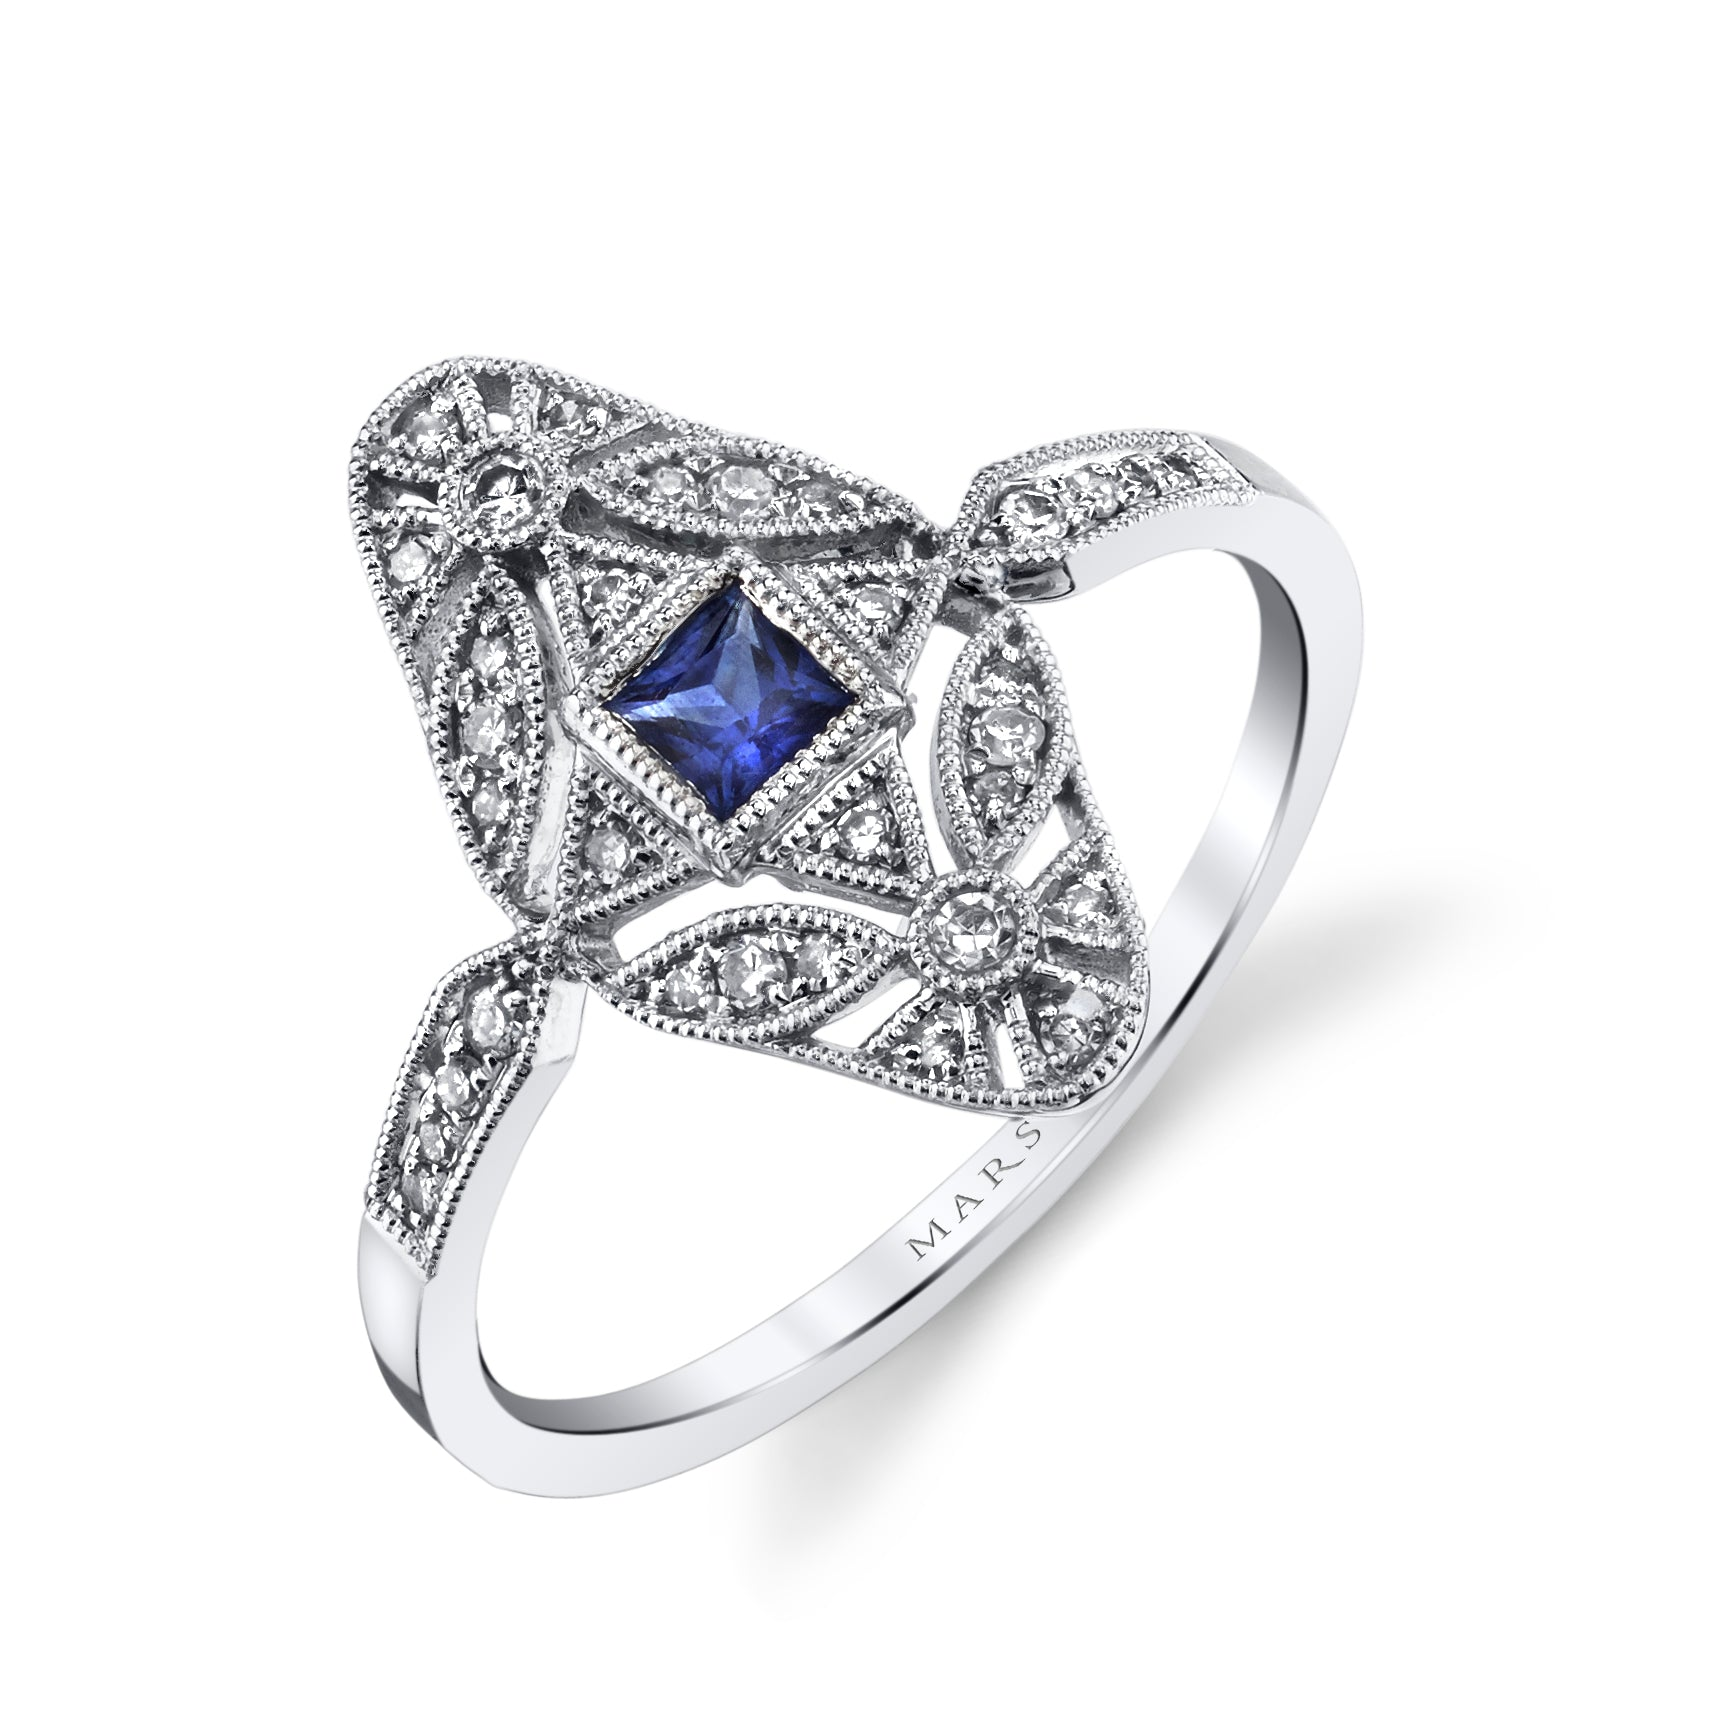 Mars Jewelry 14K White Gold Fashion Ring W/ Sapphire Accent Stones, Filigree & Milgrain Detailing 26876